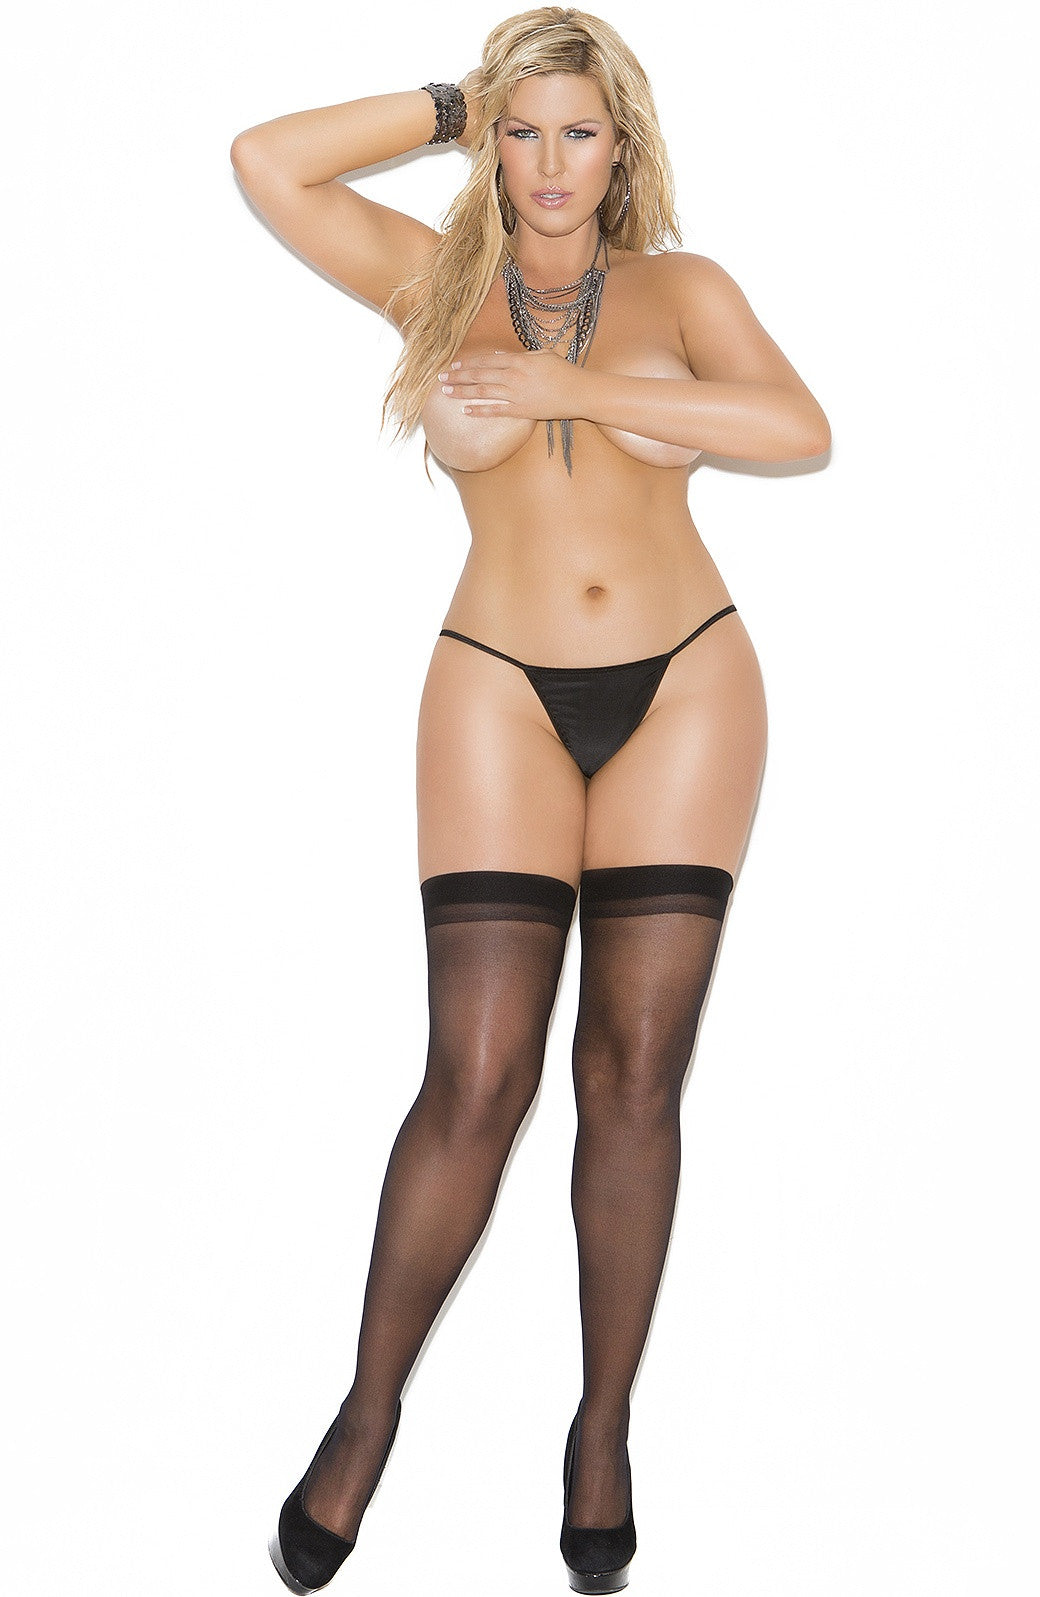 EM-1701 Sheer black back seam stocking - Sexylingerieland